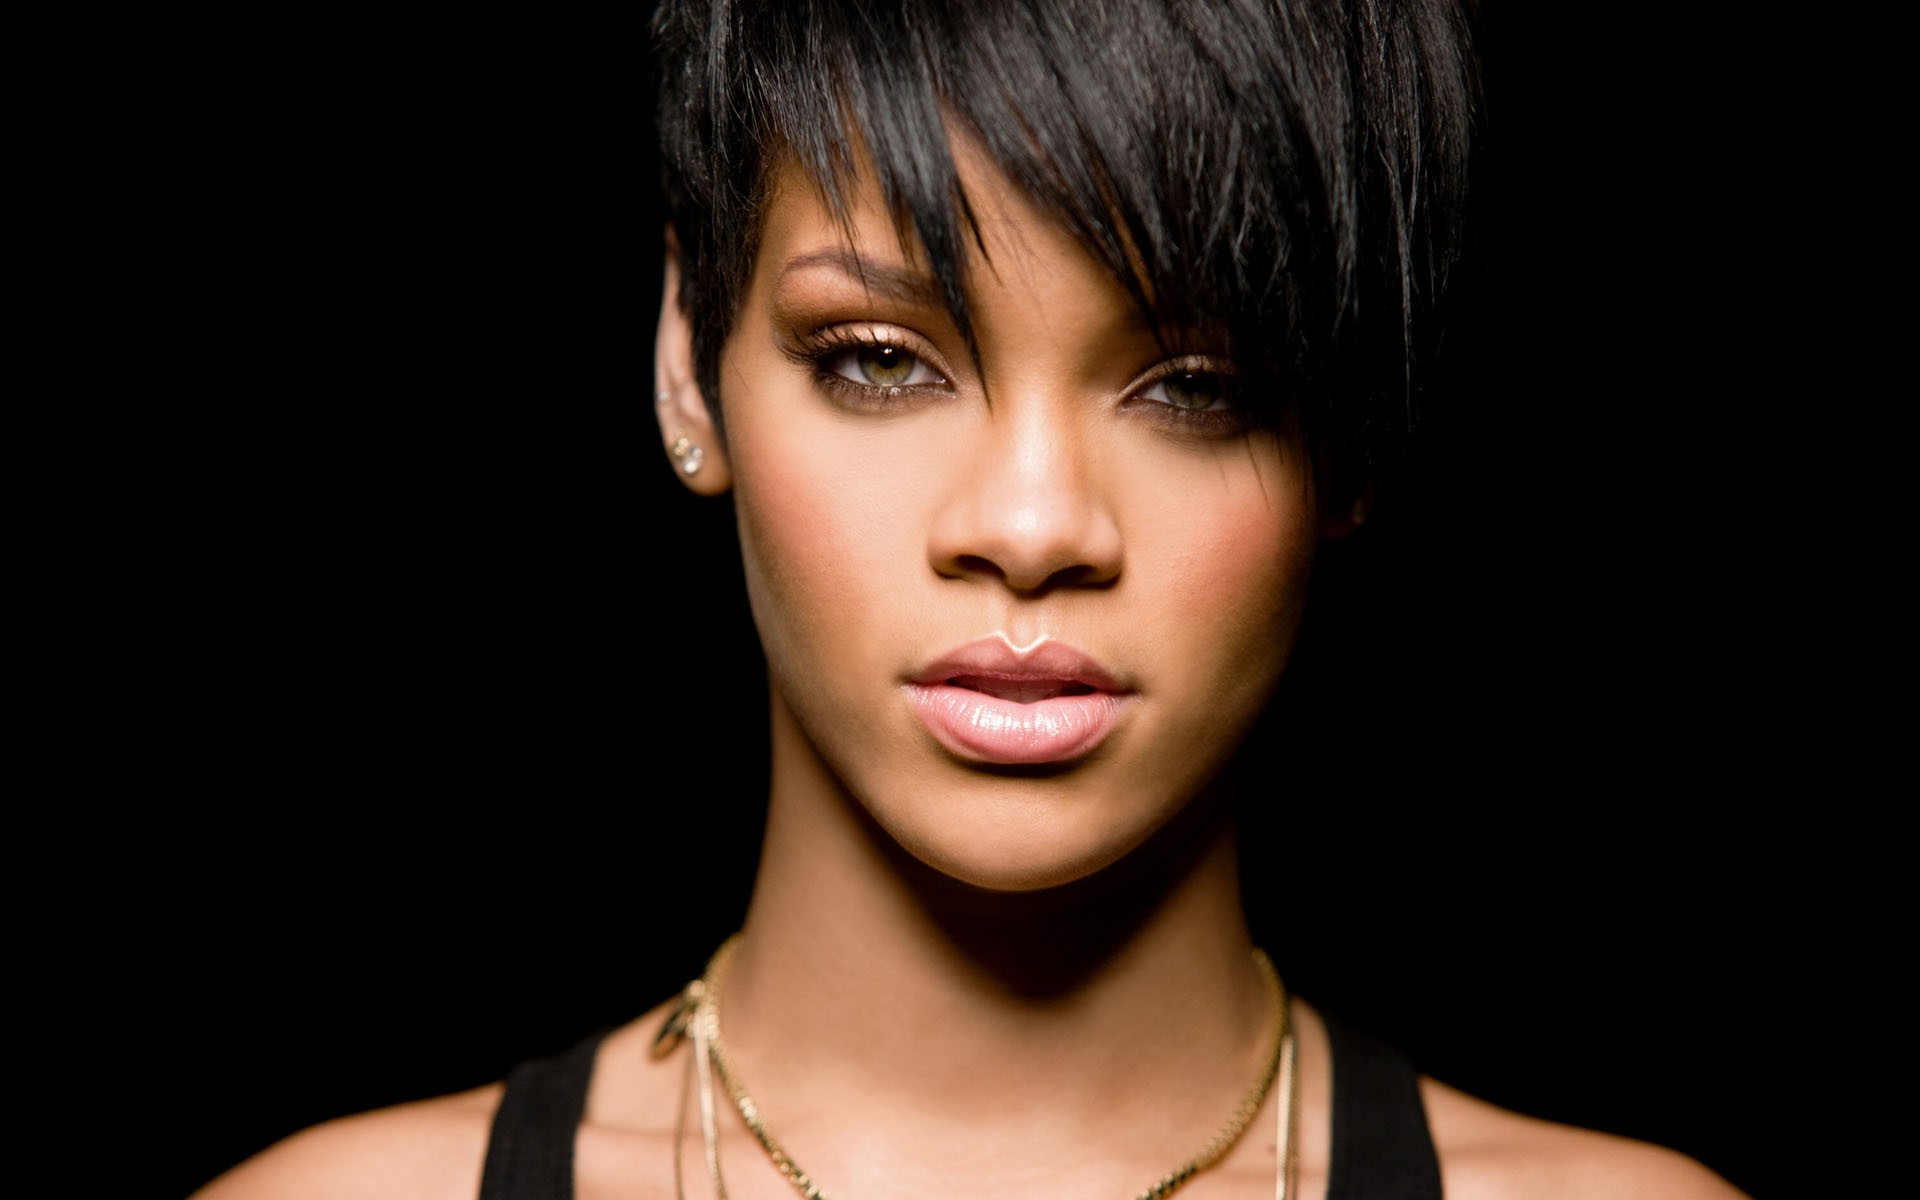 Rihanna Wallpapers High Resolution and Quality Download Rihanna